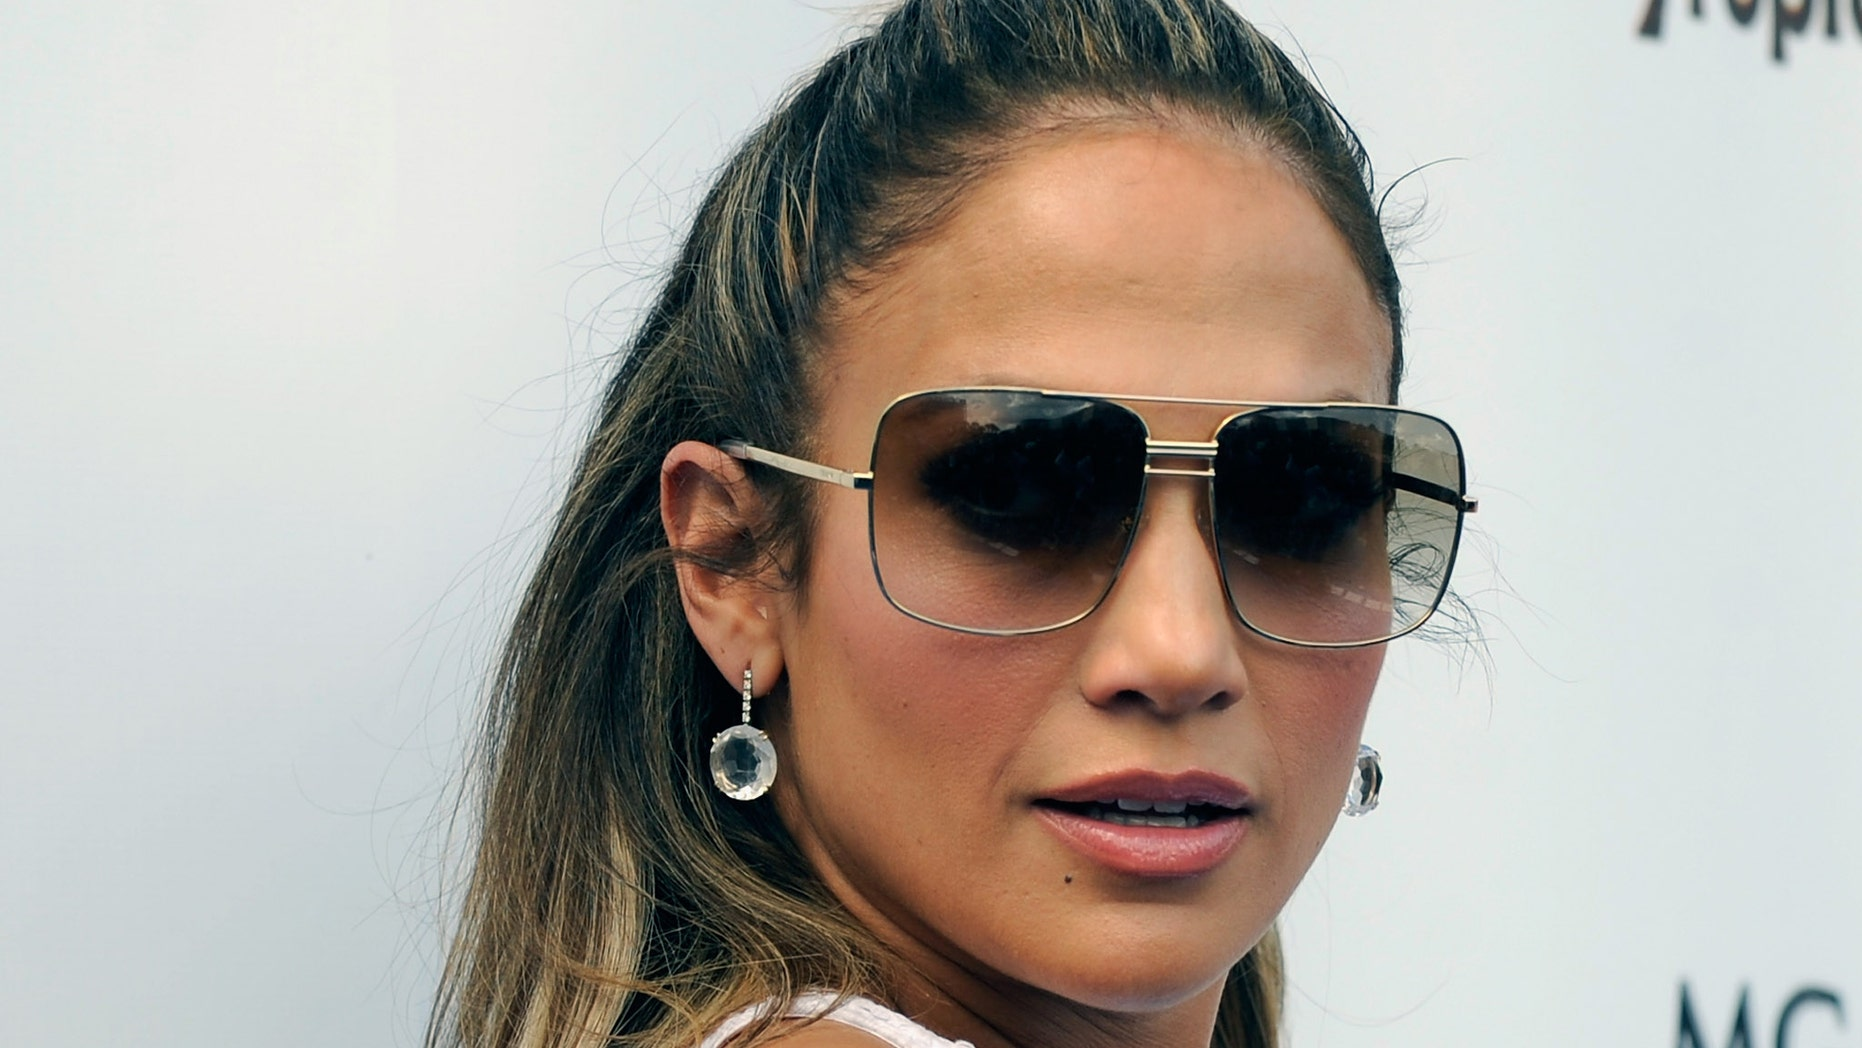 LAS VEGAS, NV - AUGUST 18:  Singer/actress Jennifer Lopez arrives for an appearance at the Wet Republic pool at the MGM Grand Hotel/Casino on August 18, 2012 in Las Vegas, Nevada.  (Photo by David Becker/Getty Images)